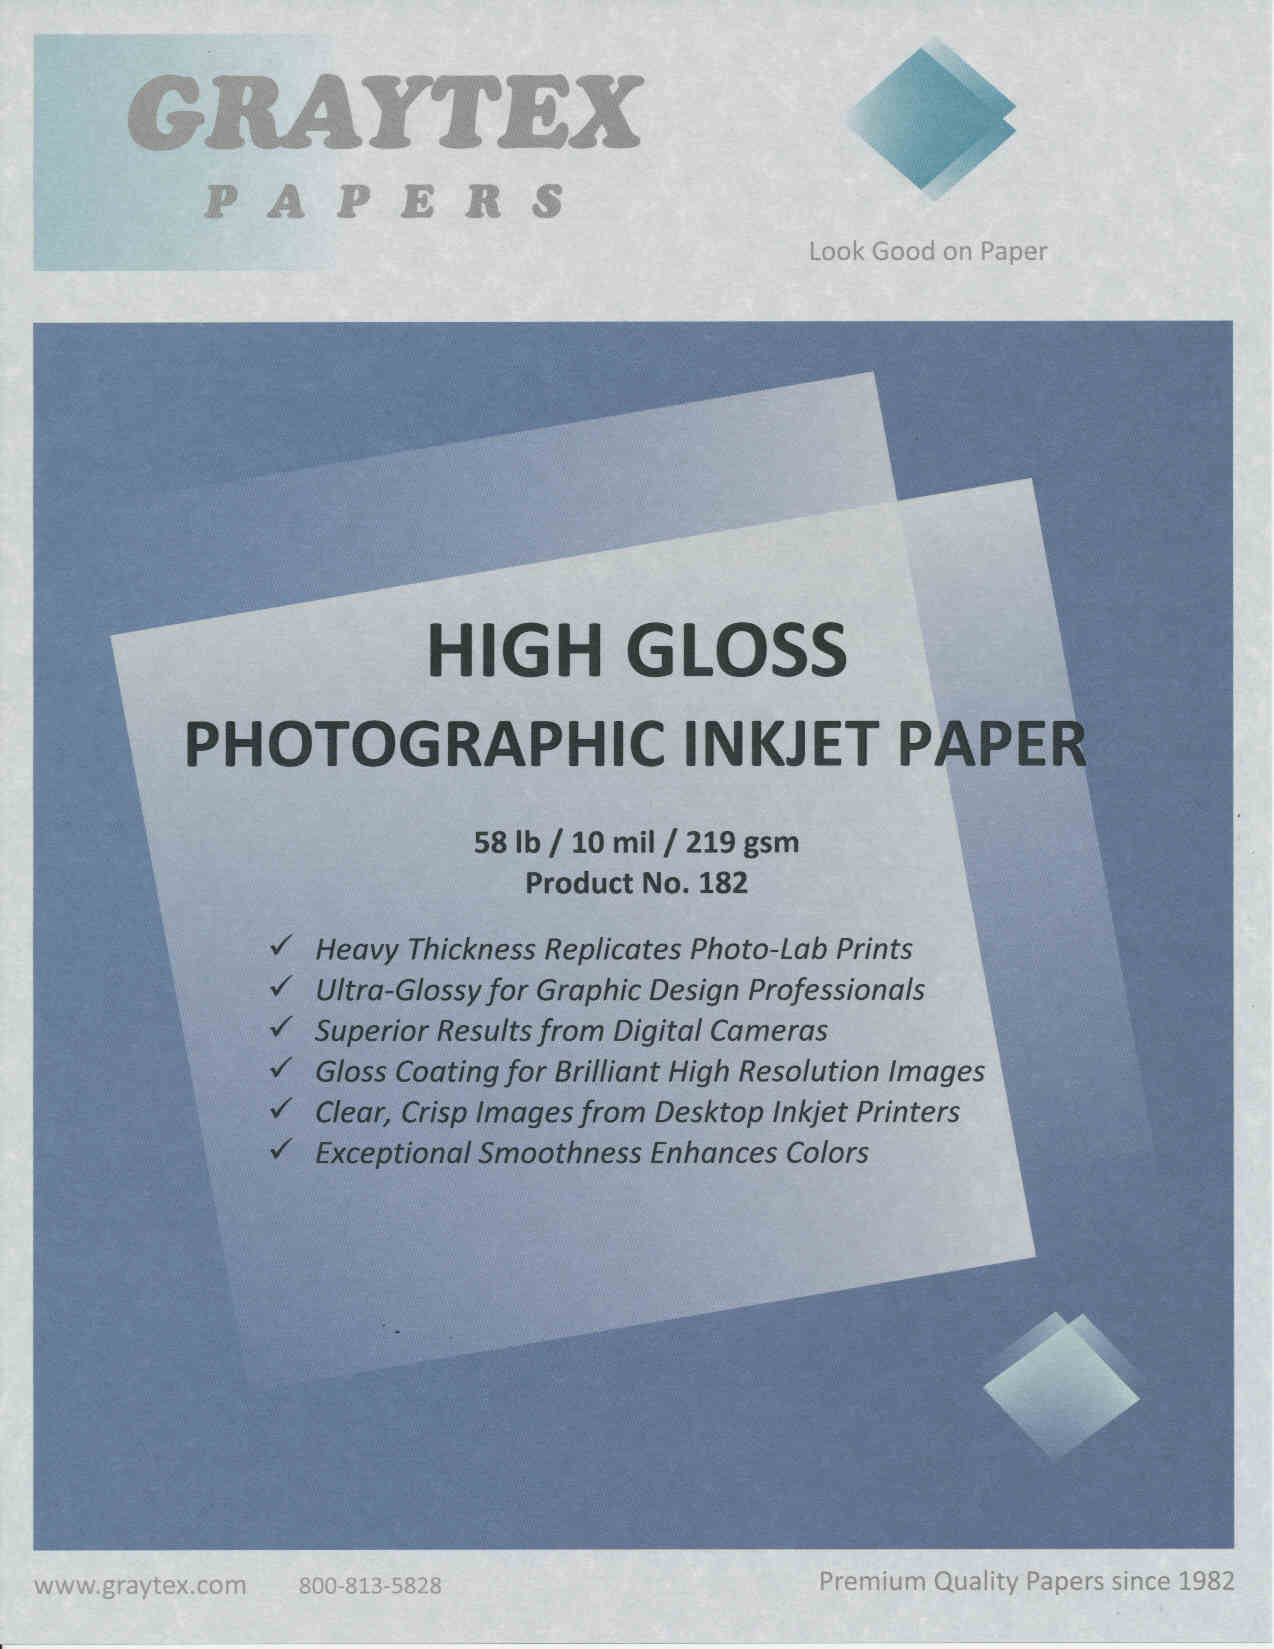 Inkjet Photo Papers for One or Two-sided Photograph-like Prints